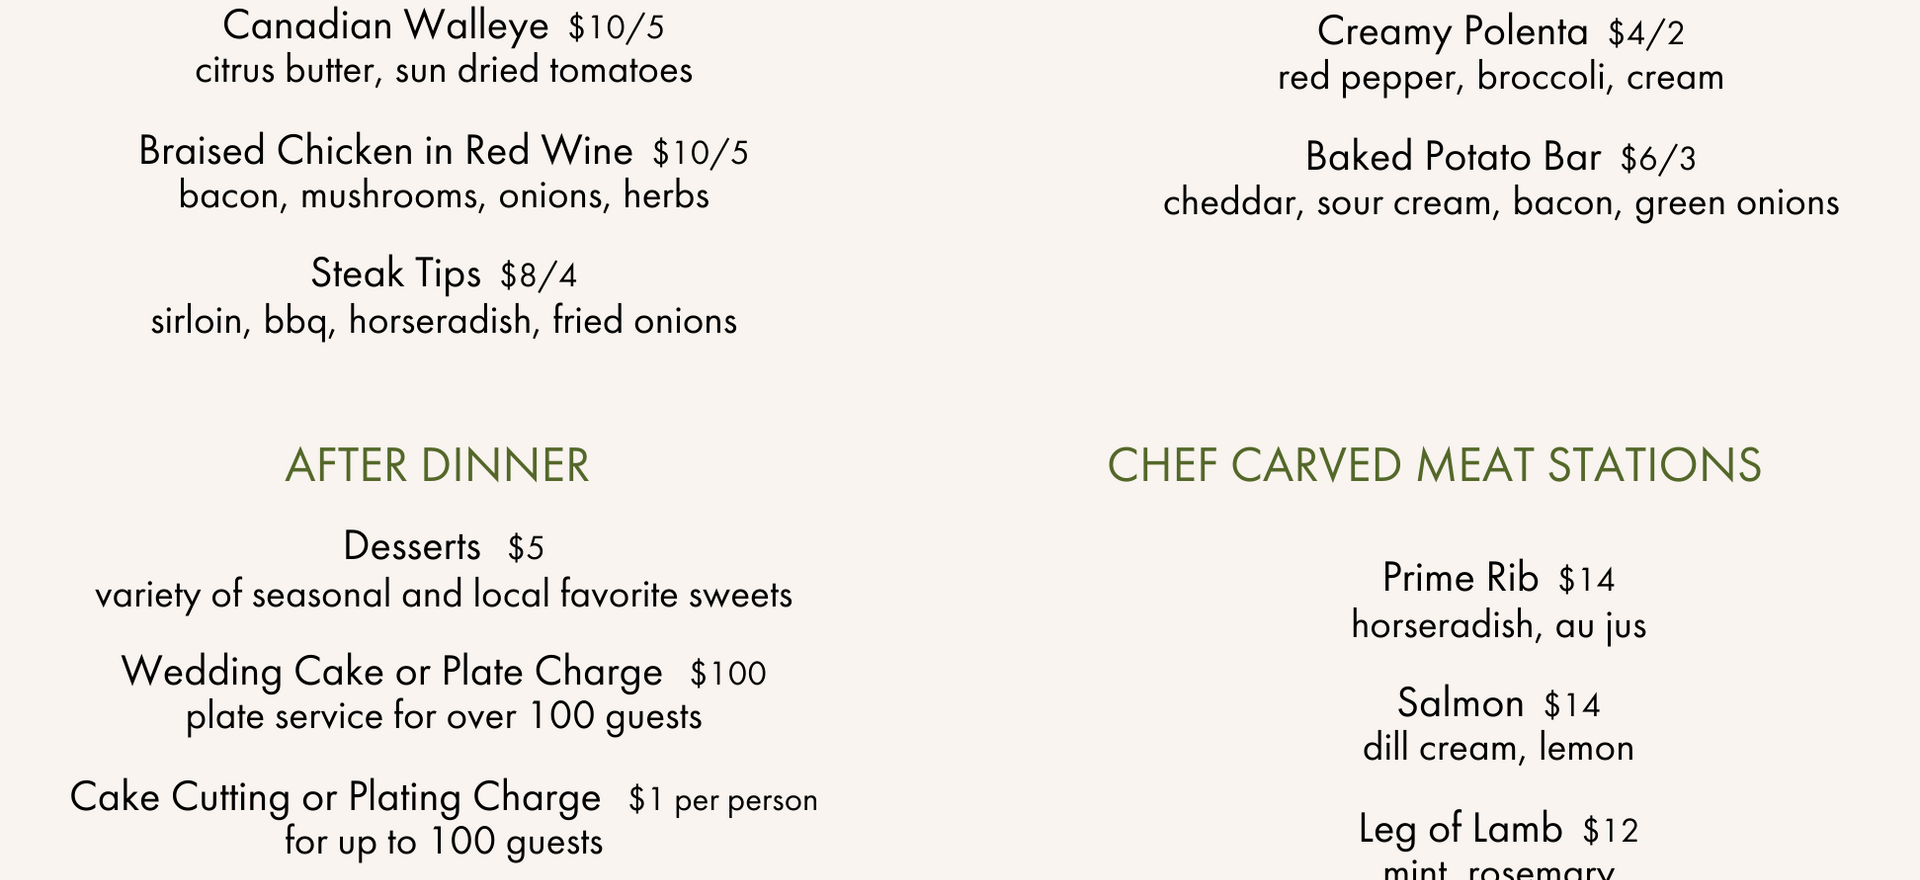 Wilbert's Event Center Menu page-4.png